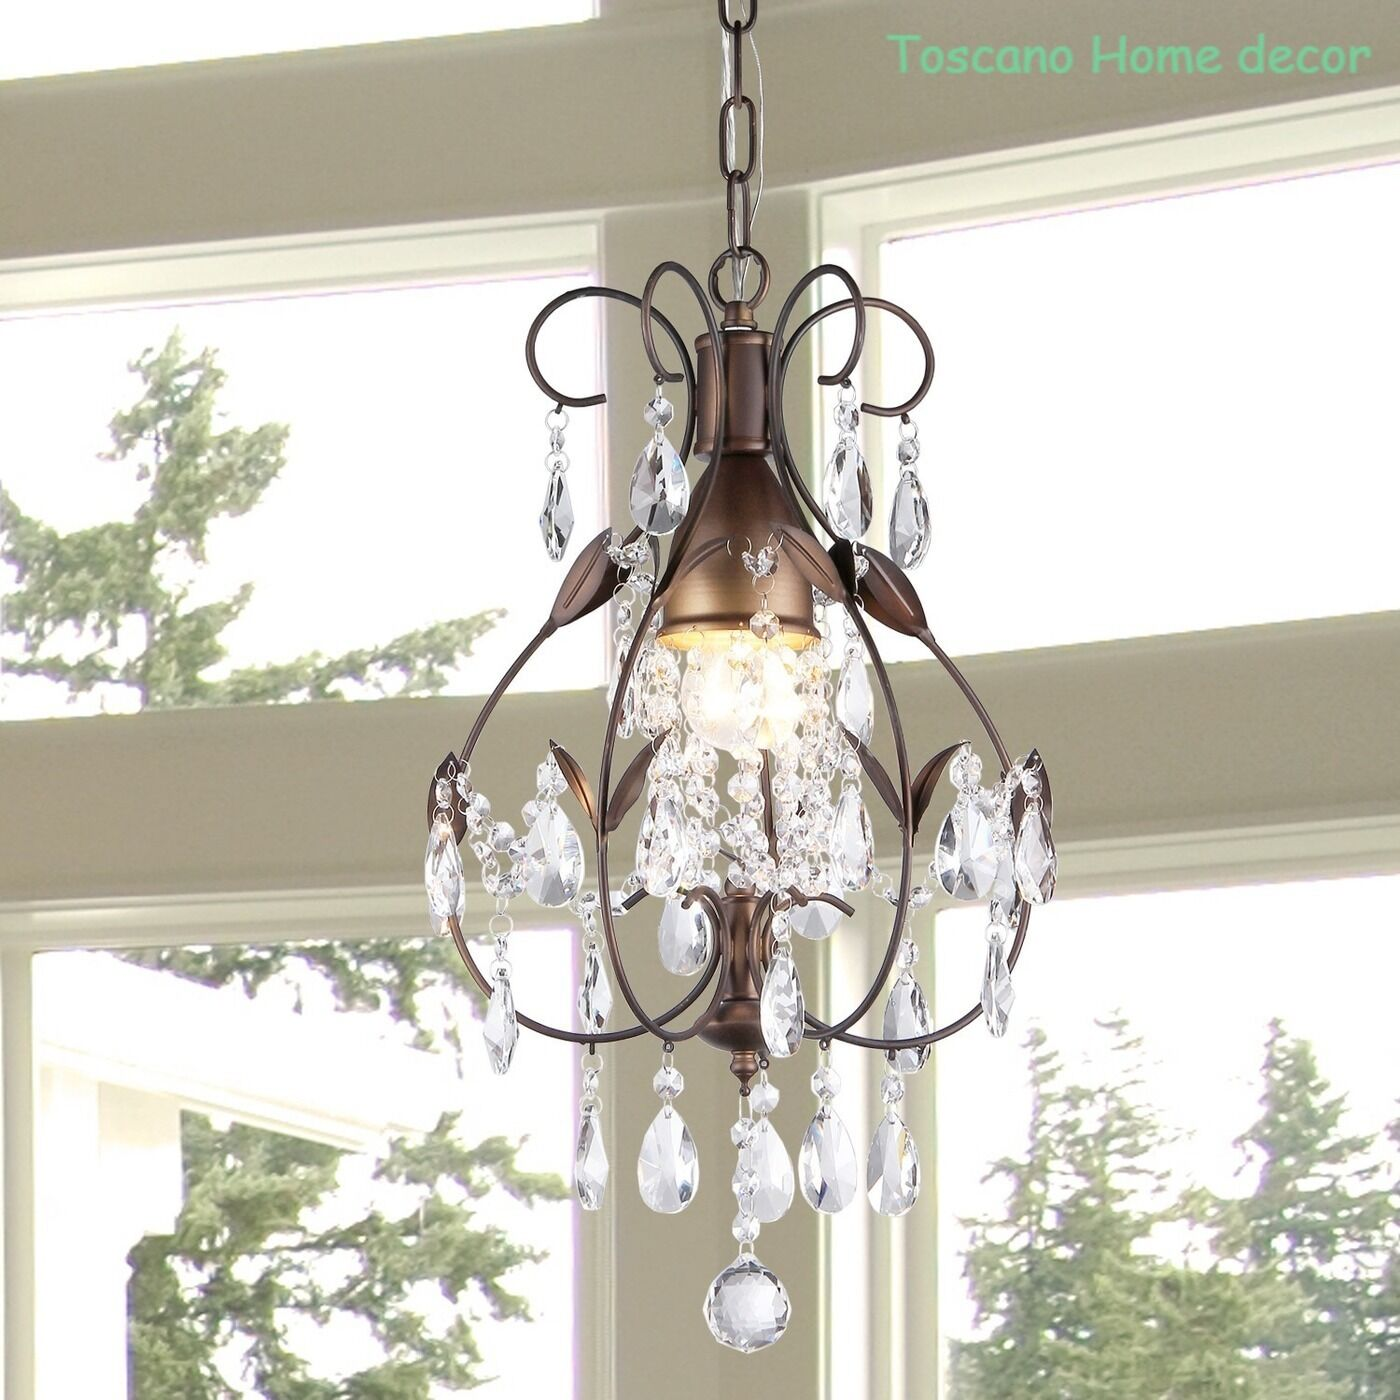 Contemporary Lighting Fixtures For Home: Modern Chandelier Lighting Rustic Contemporary Crystal